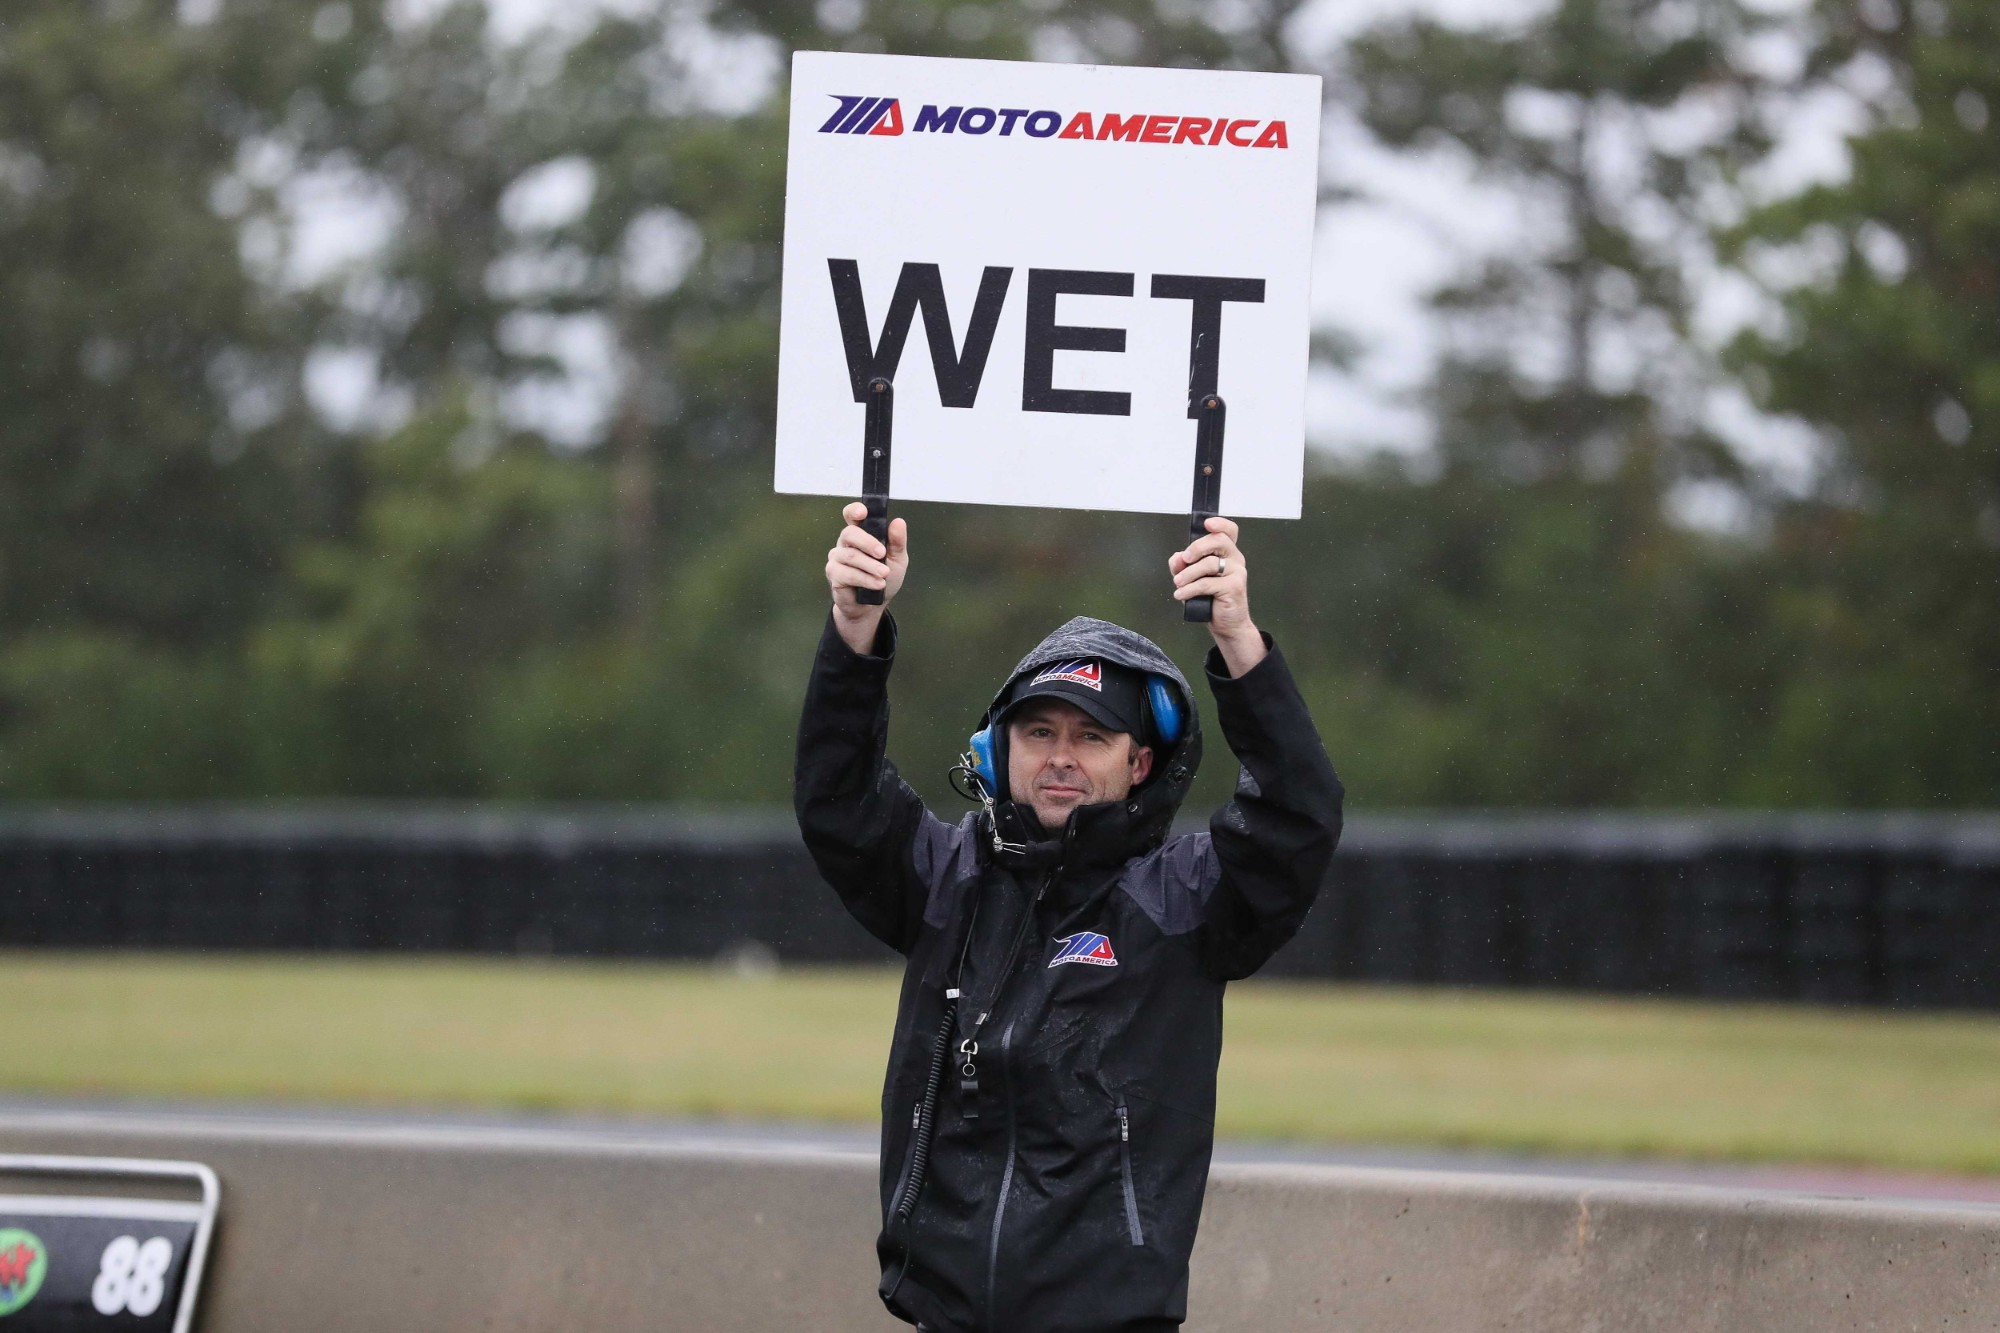 Motoamerica Full Race Videos From Round Nine At New Jersey Motorsports Park As Seen On Bein Sports Usa Tv Roadracing World Magazine Motorcycle Riding Racing Tech News